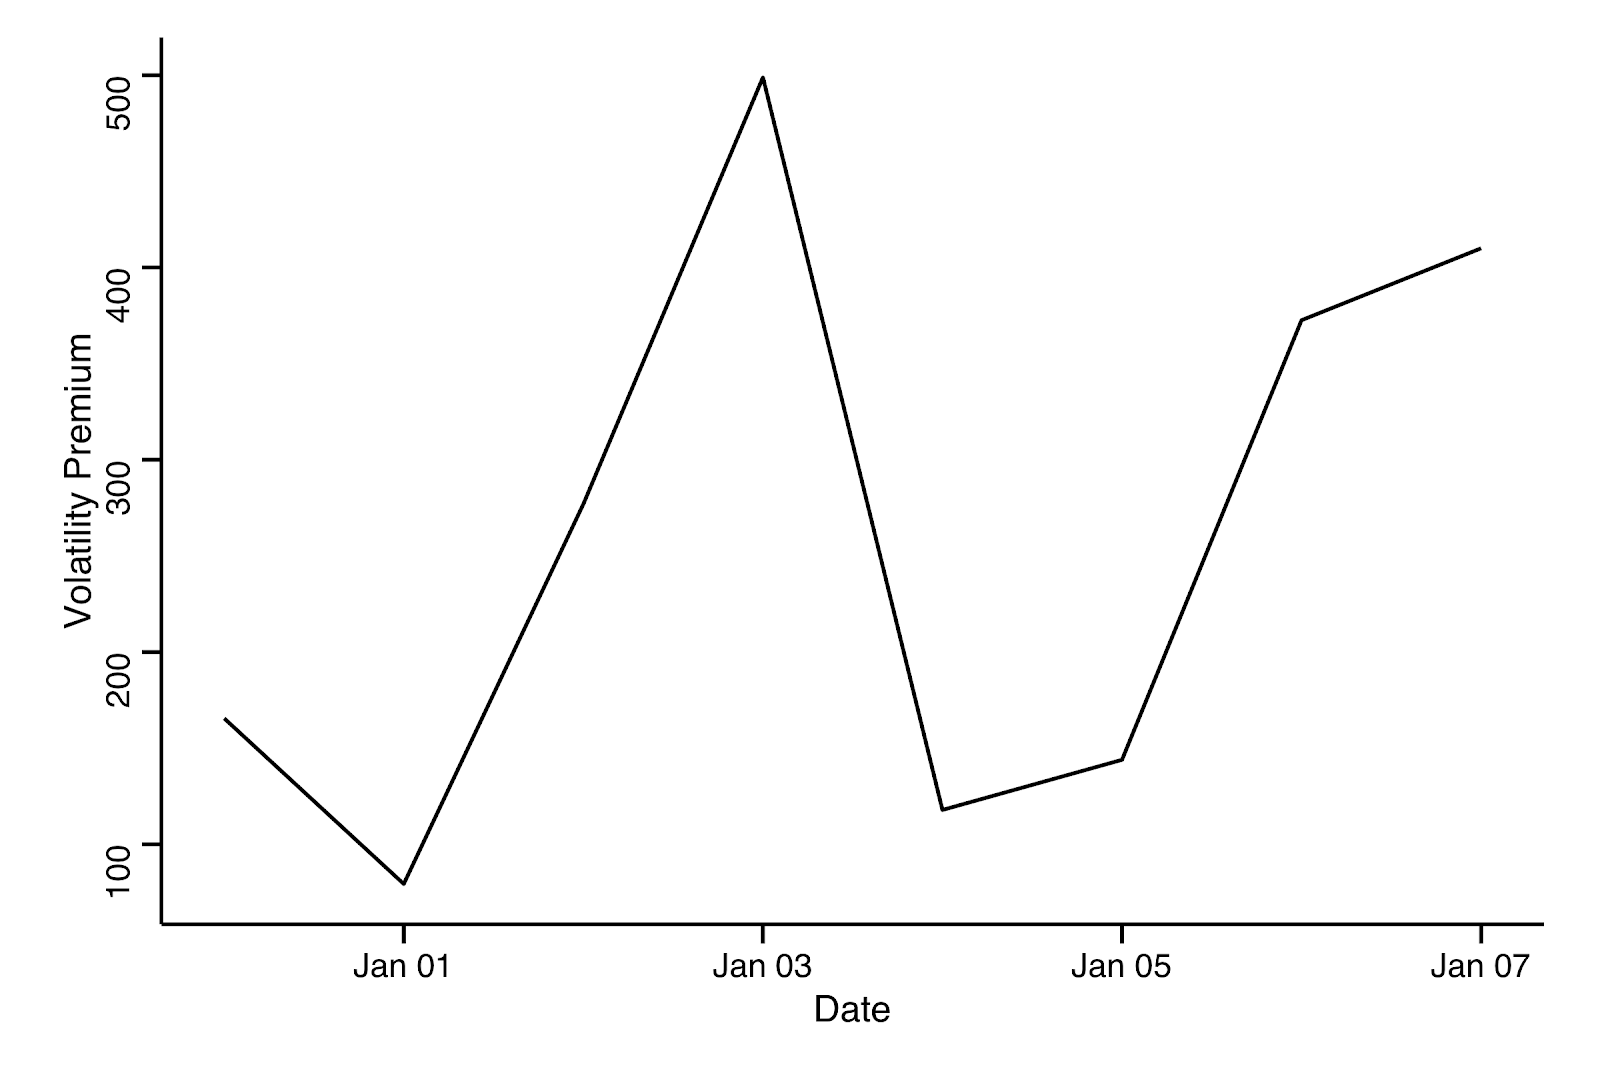 Figure 4: Bitcoin's Volatility Premium in the last 7 days. Data source: Coinmarketcap